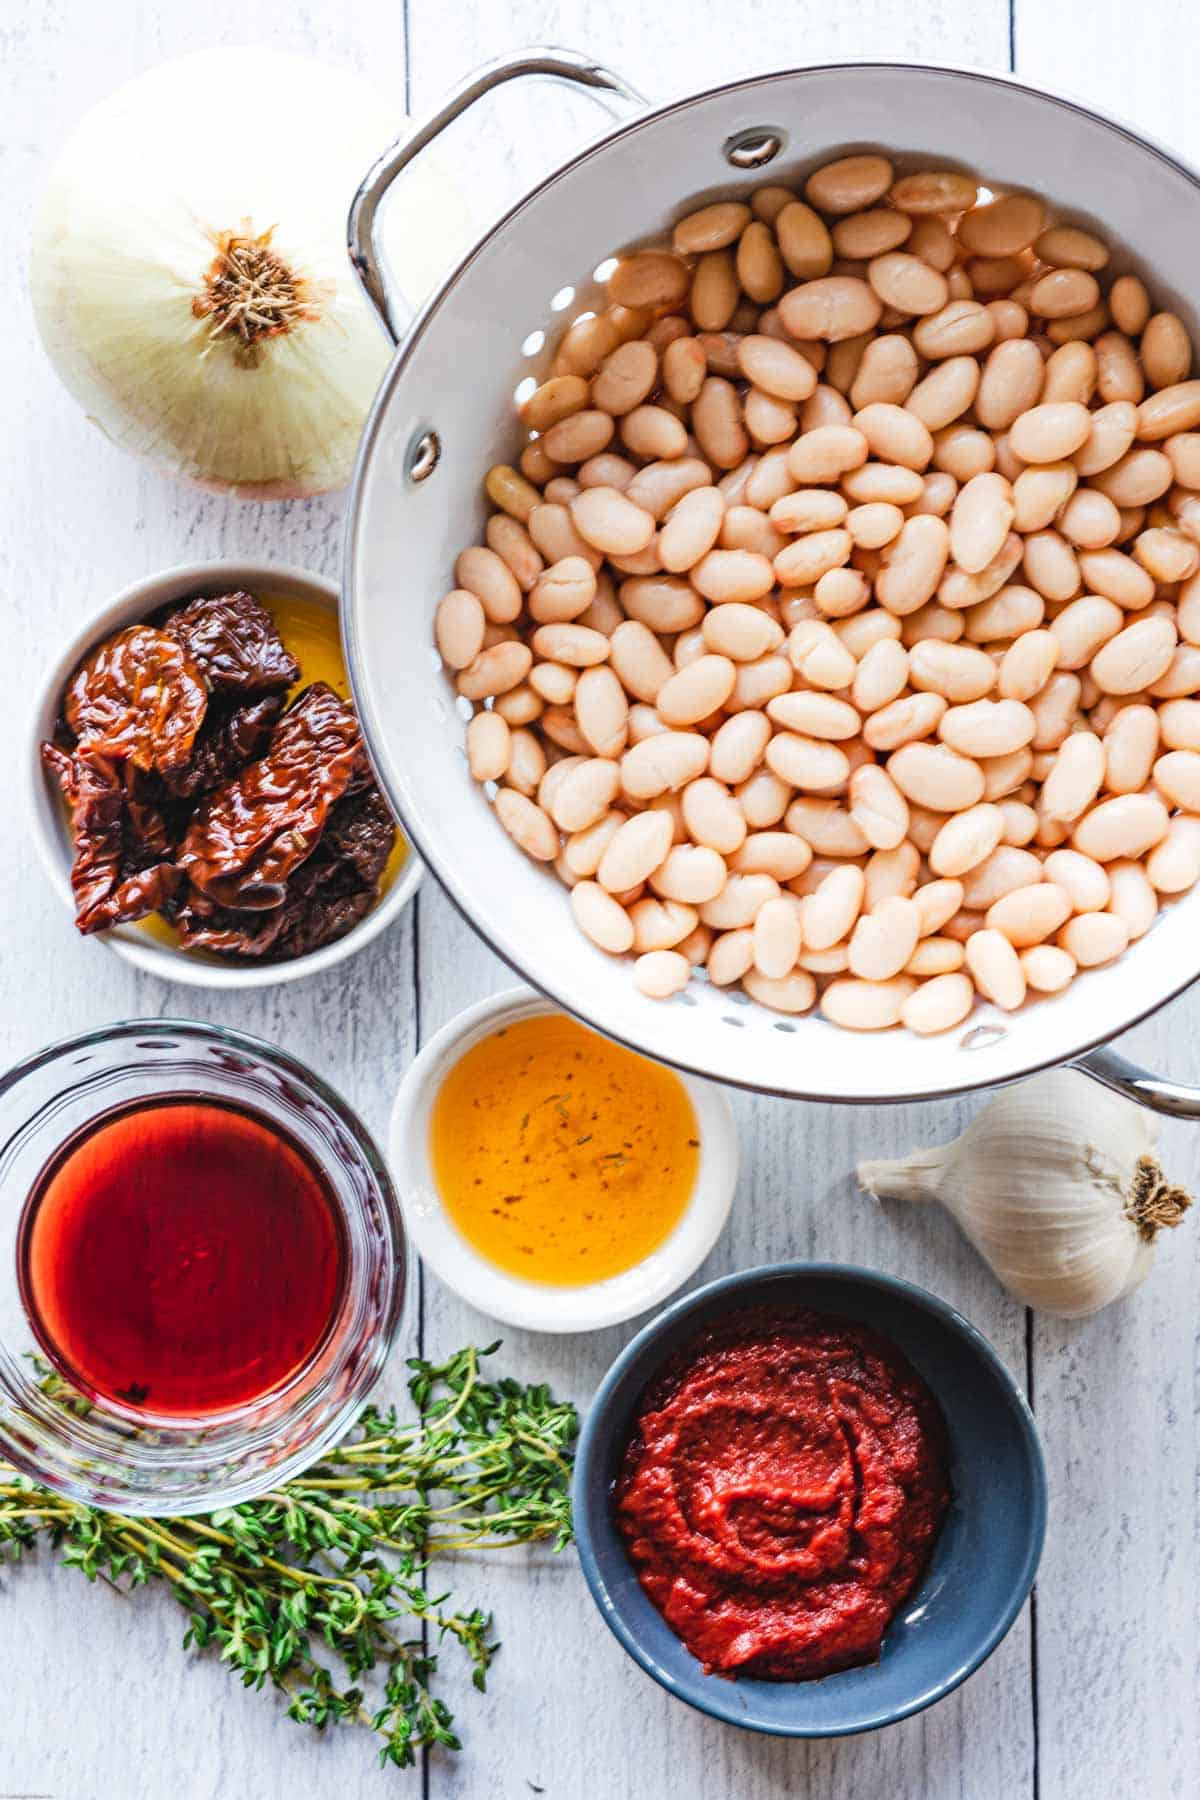 Ingredients: white beans, tomato paste, fresh thyme, vegetable broth, sun-dried tomatoes in oil, onion, and garlic.